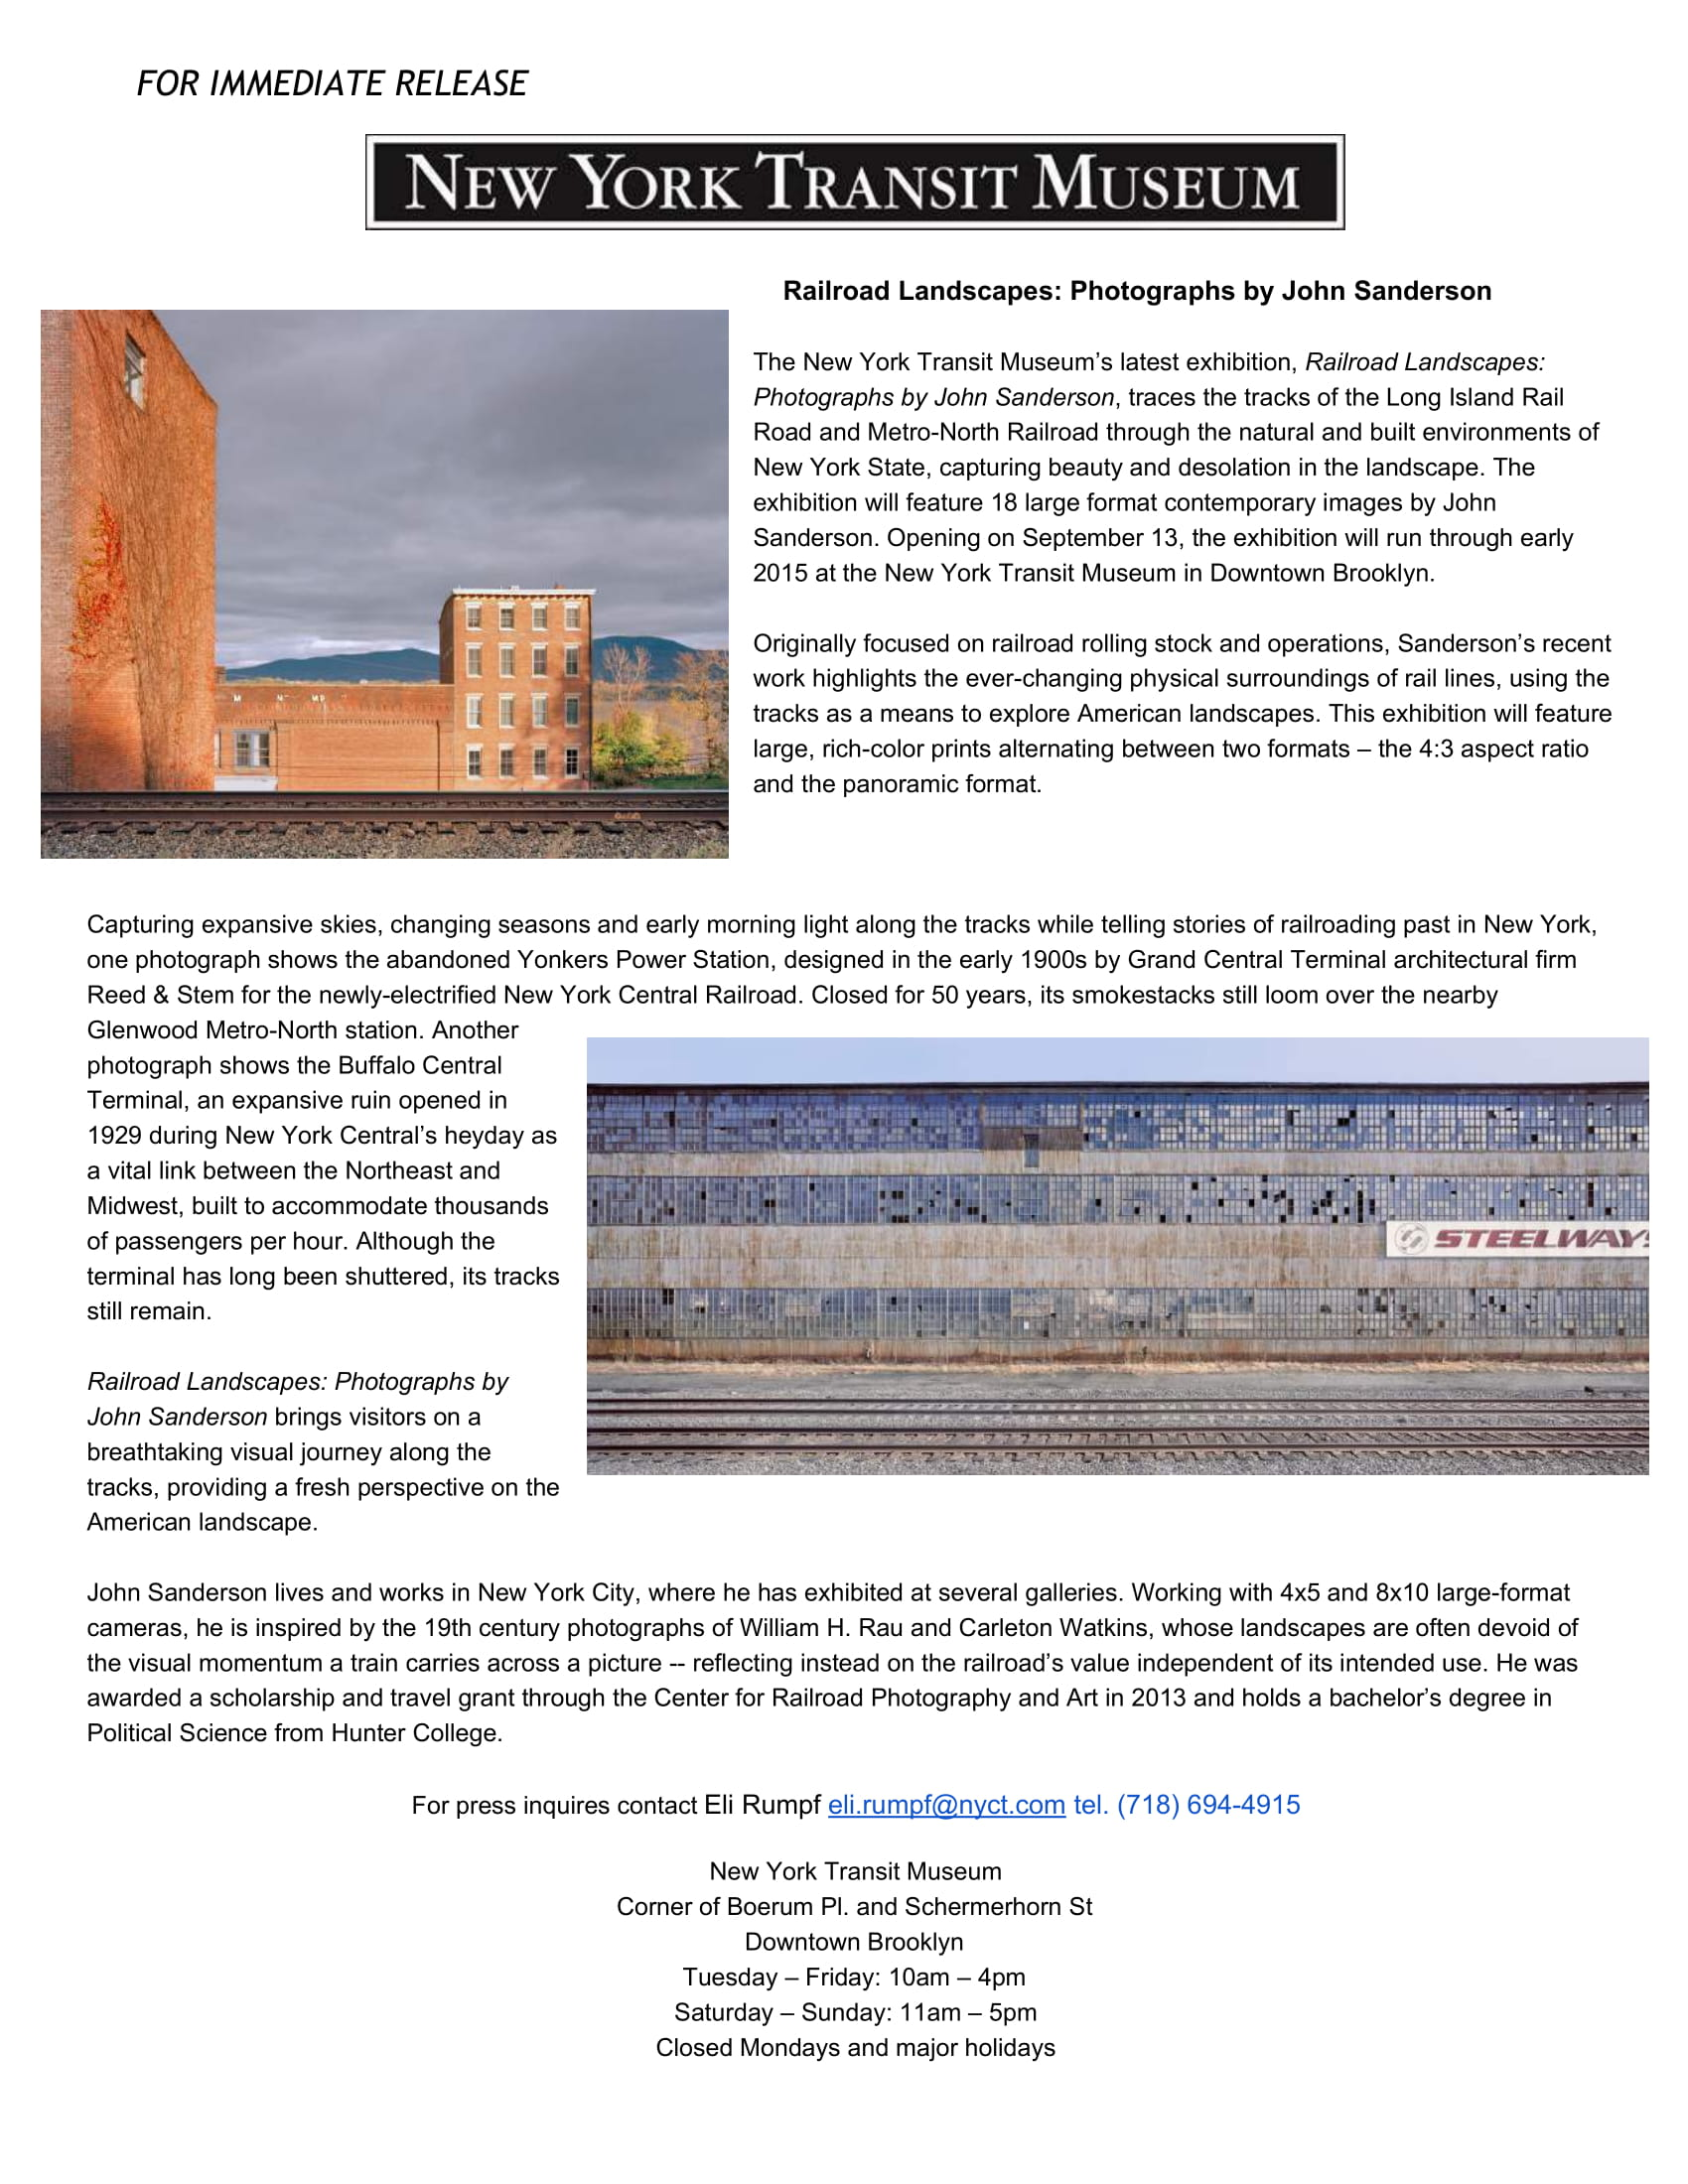 9-3-2014_Railroad Landscapes Exhibition_New York Transit Museum_Press_release.jpg